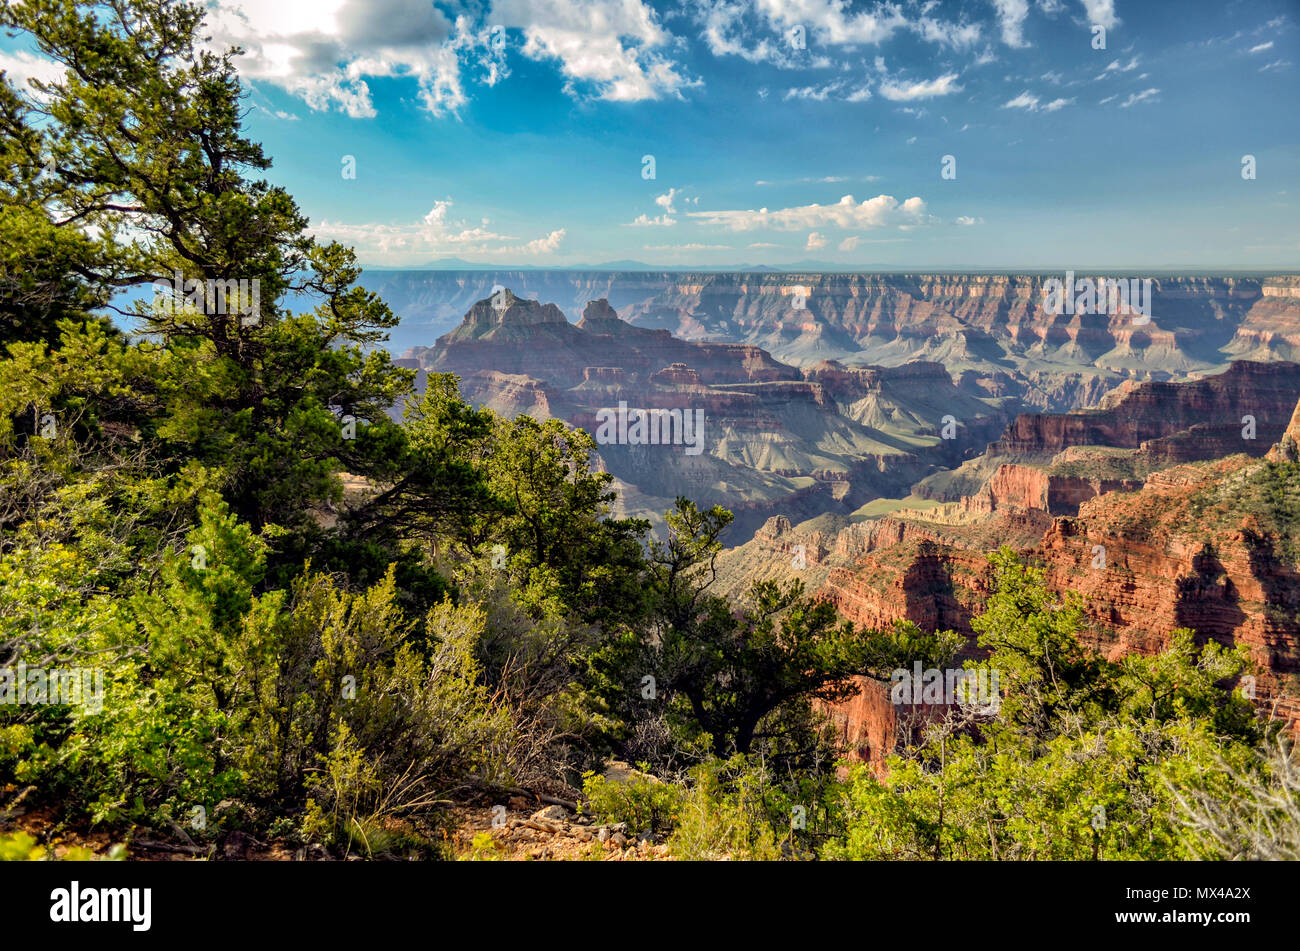 Scenic view of the Grand Canyon with trees and bushes in foreground colorful canyon below under a blue sky with white fluffy clouds. - Stock Image